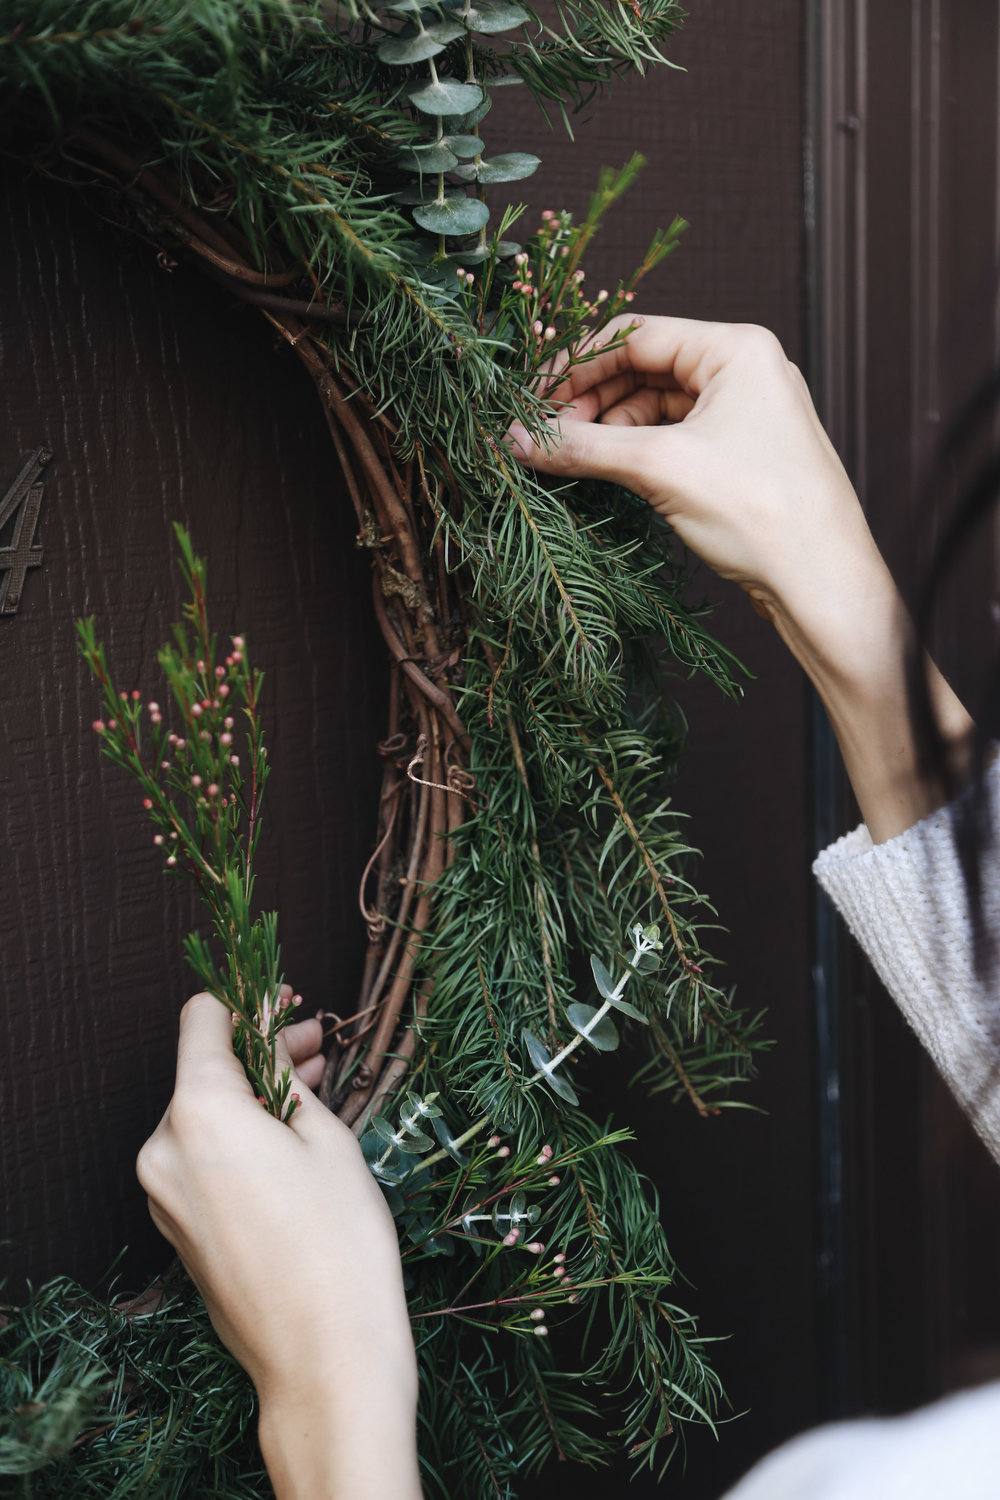 diy holiday wreath ideas.jpg